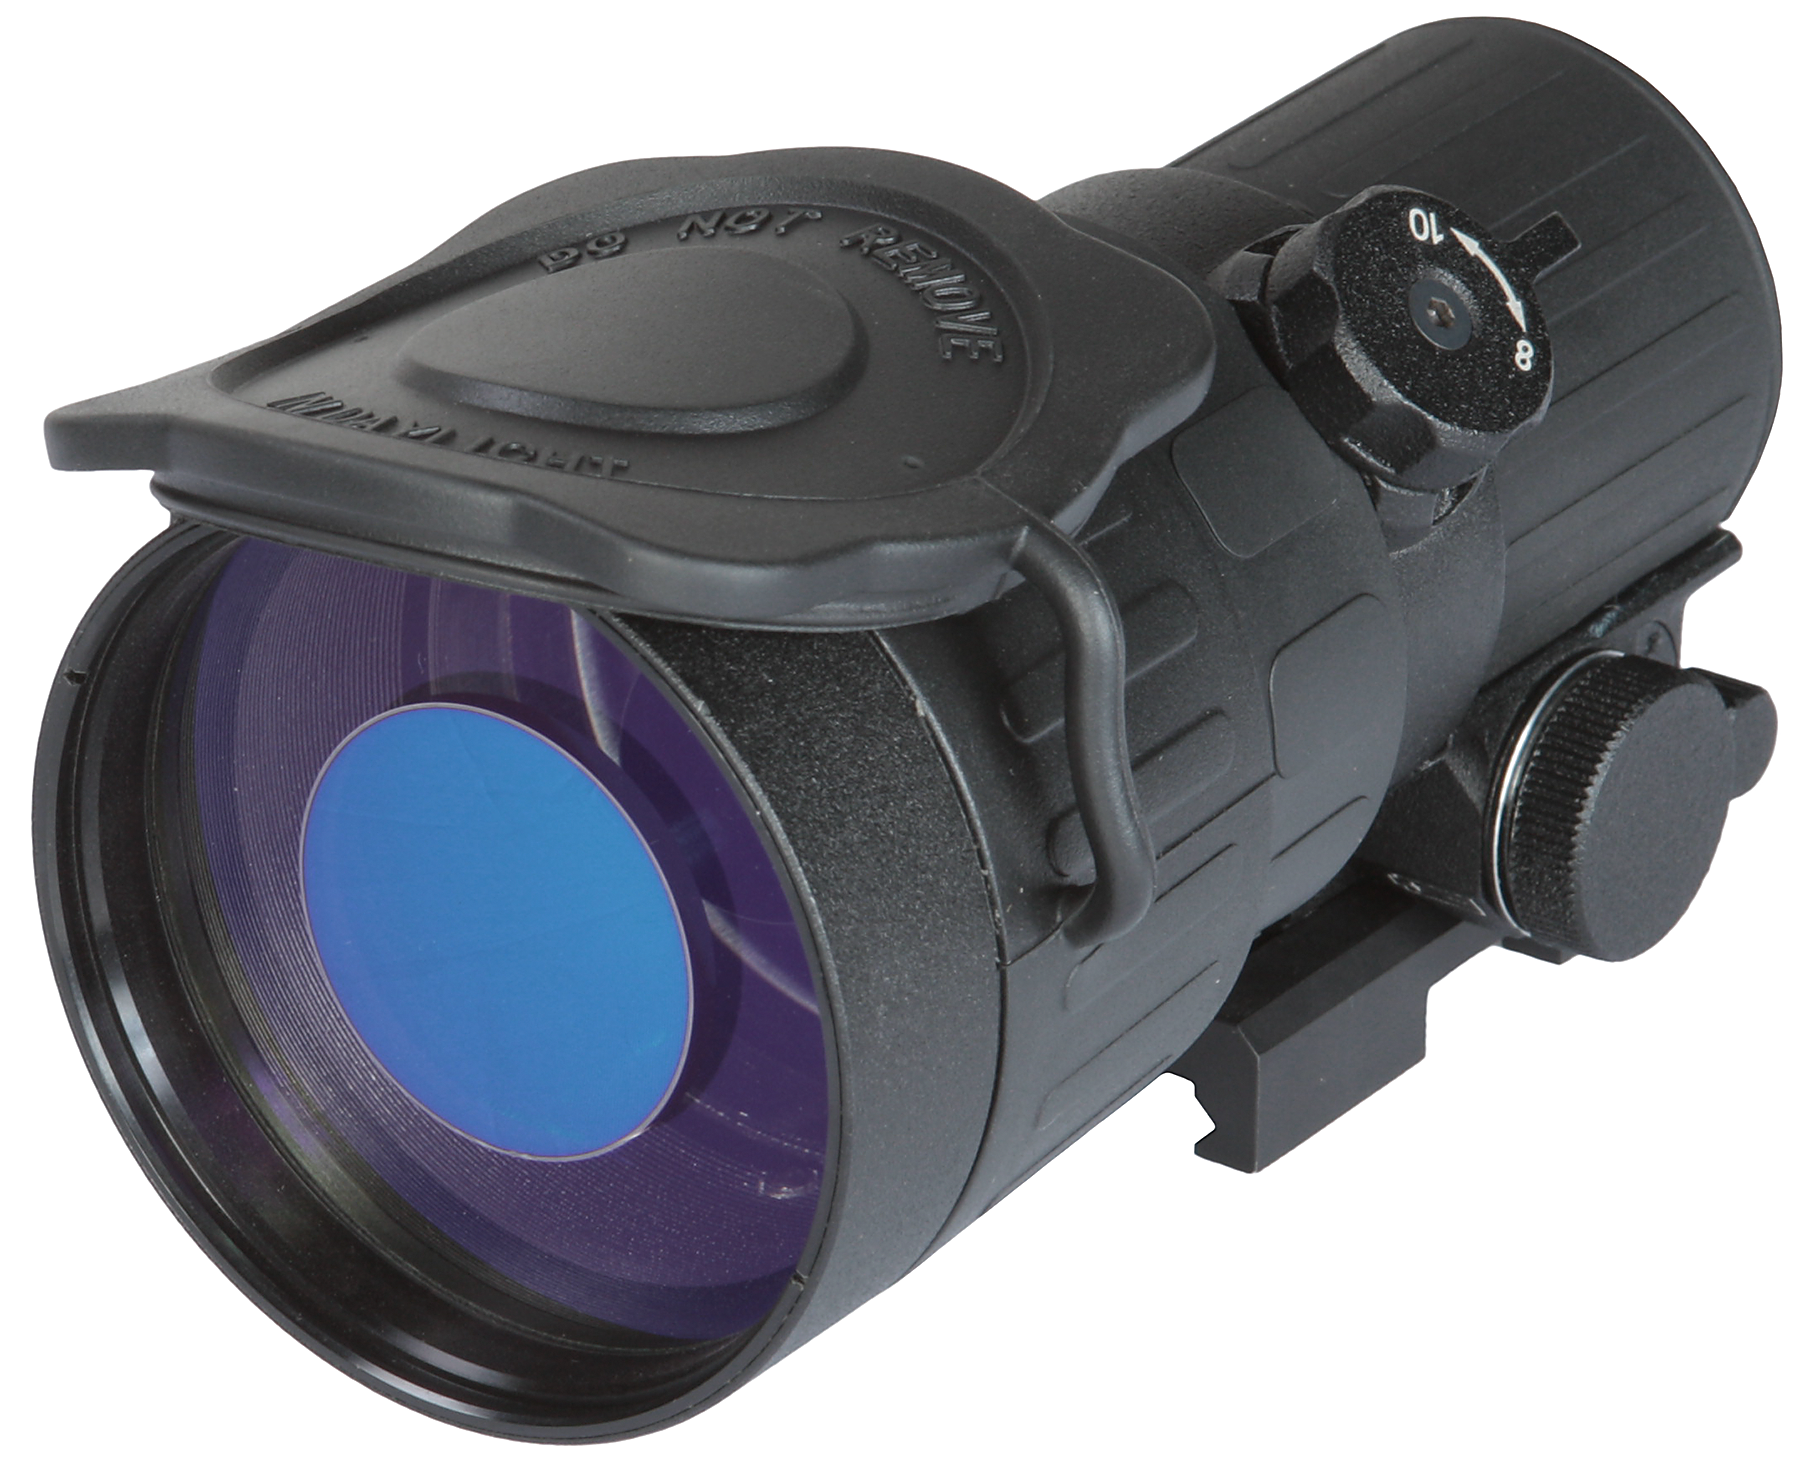 ATN NVDNPS2220 PS22-2 Monocular 2+ Gen 1x40mm 13 degrees FOV